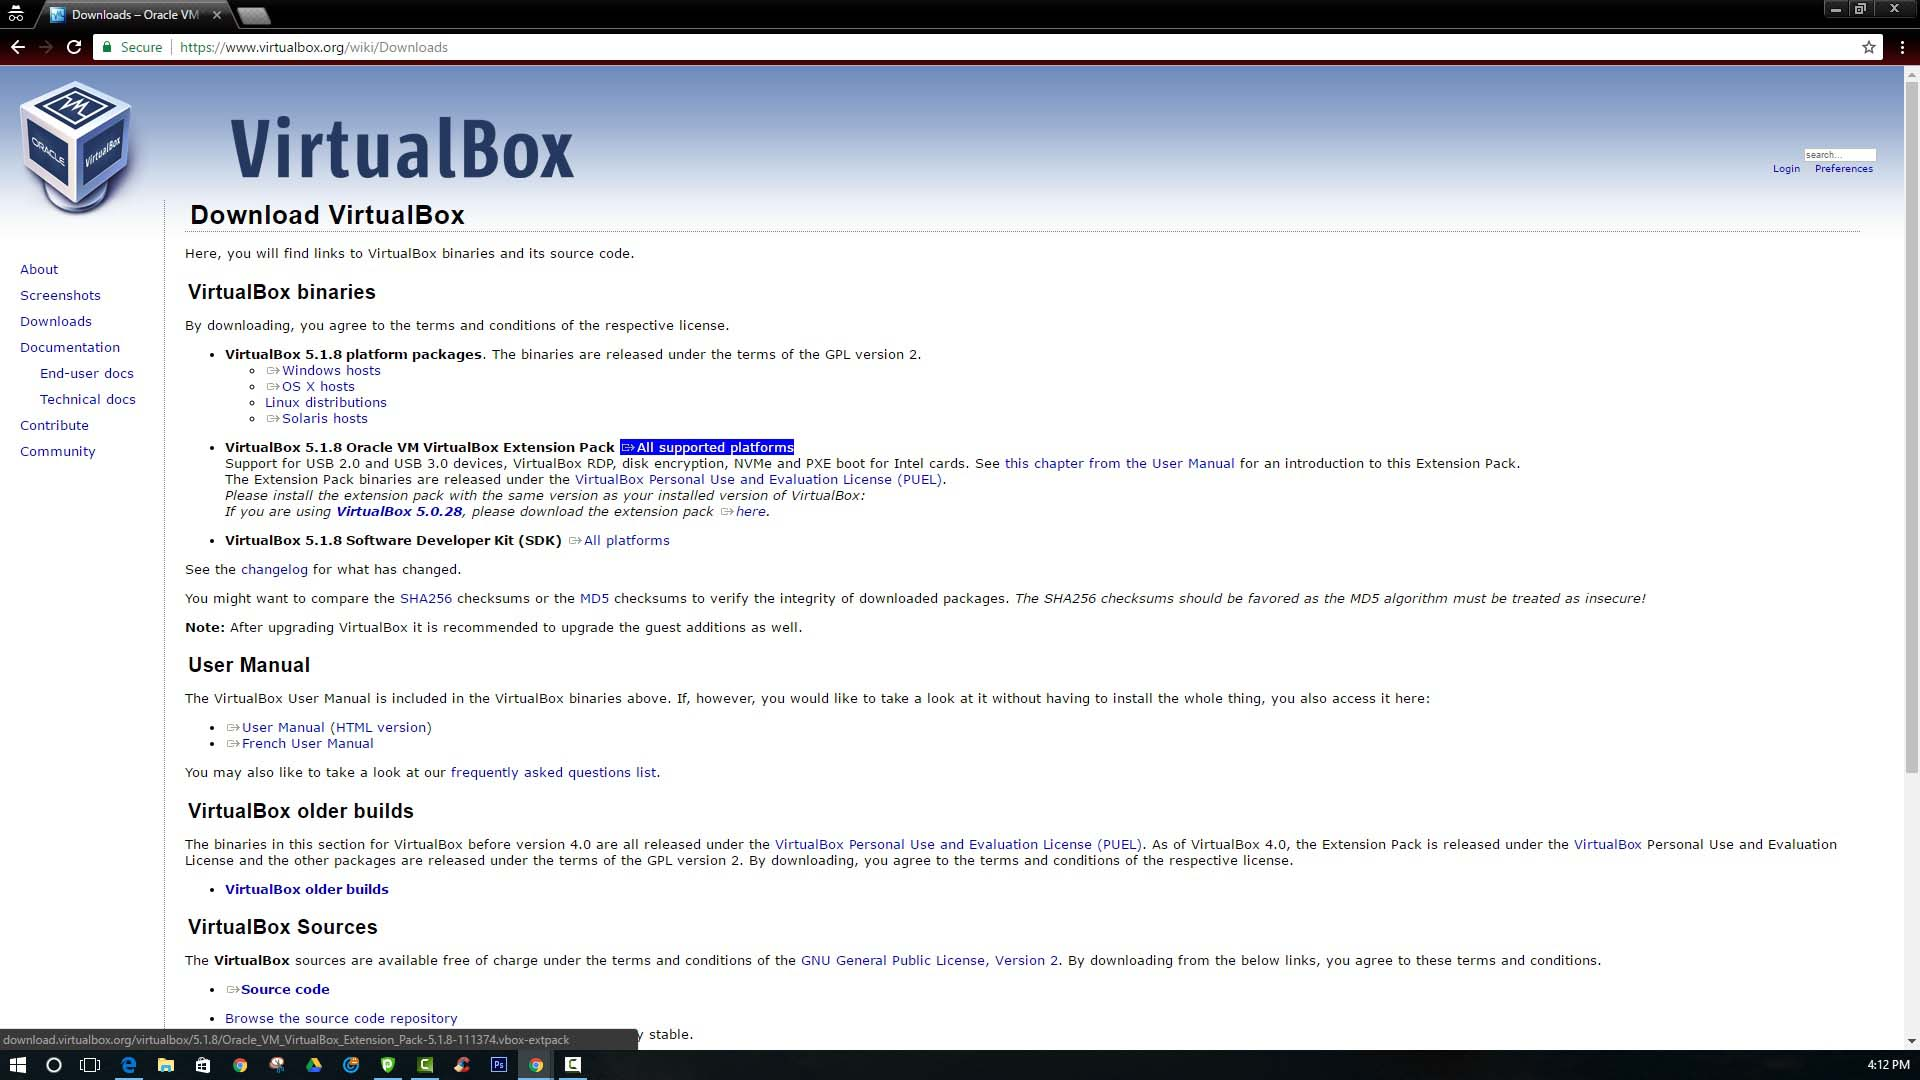 How to Install VirtualBox Extension Pack-downloading